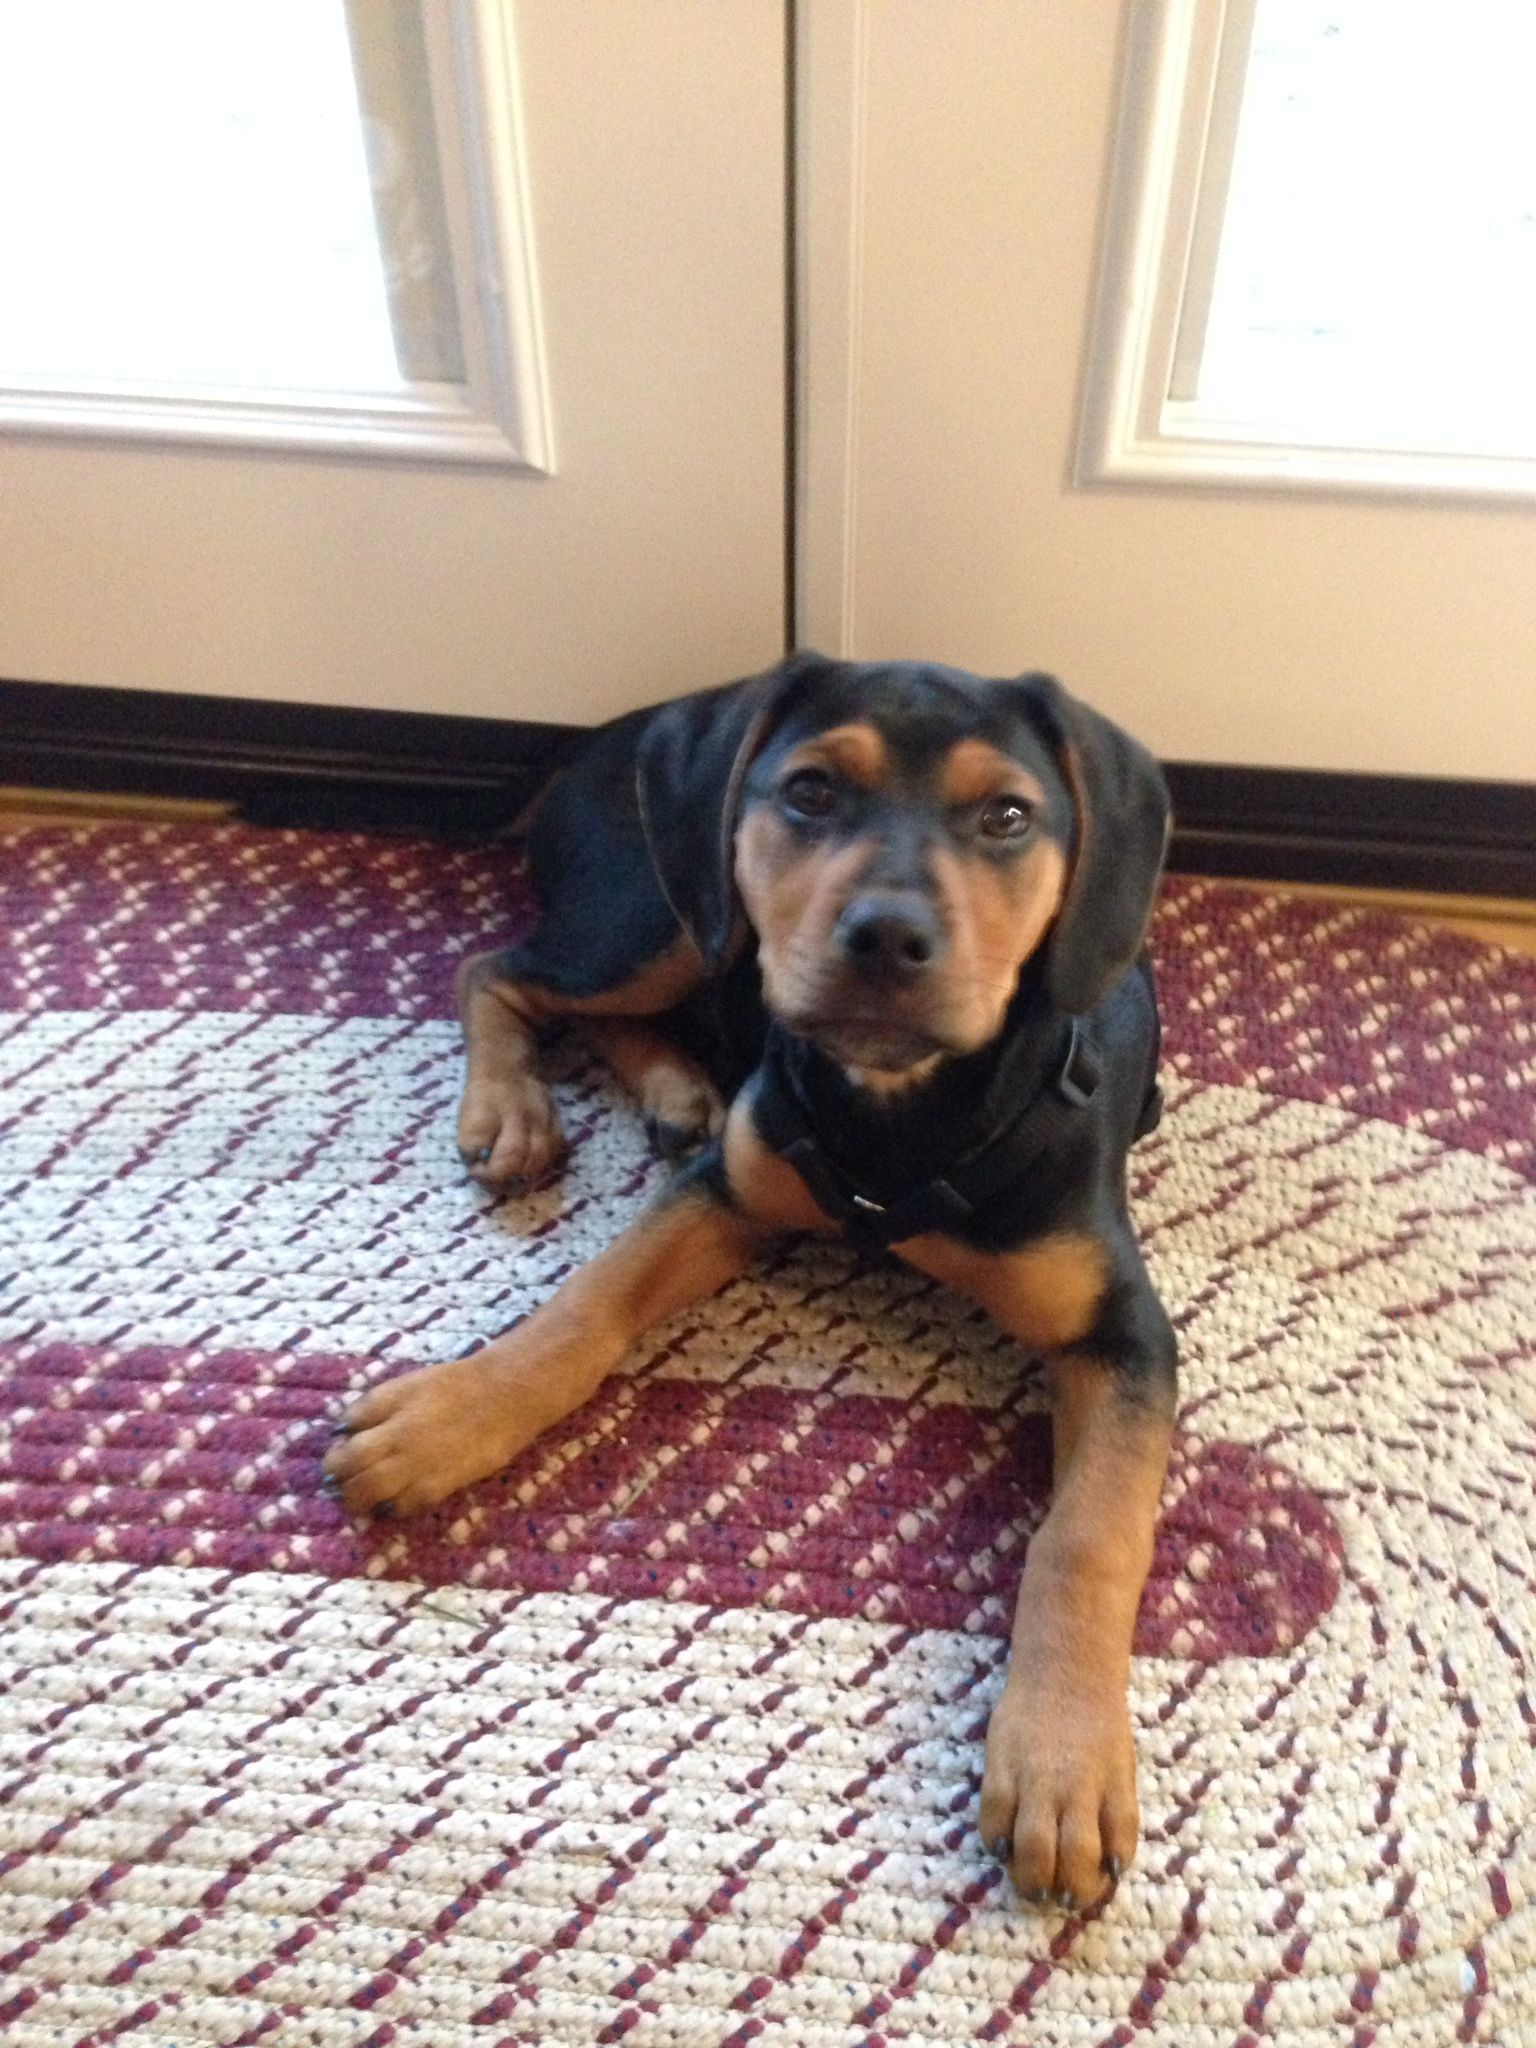 My New Pup At 14 Weeks Rescue Dog Beagle Boxer Rottweiler Mix